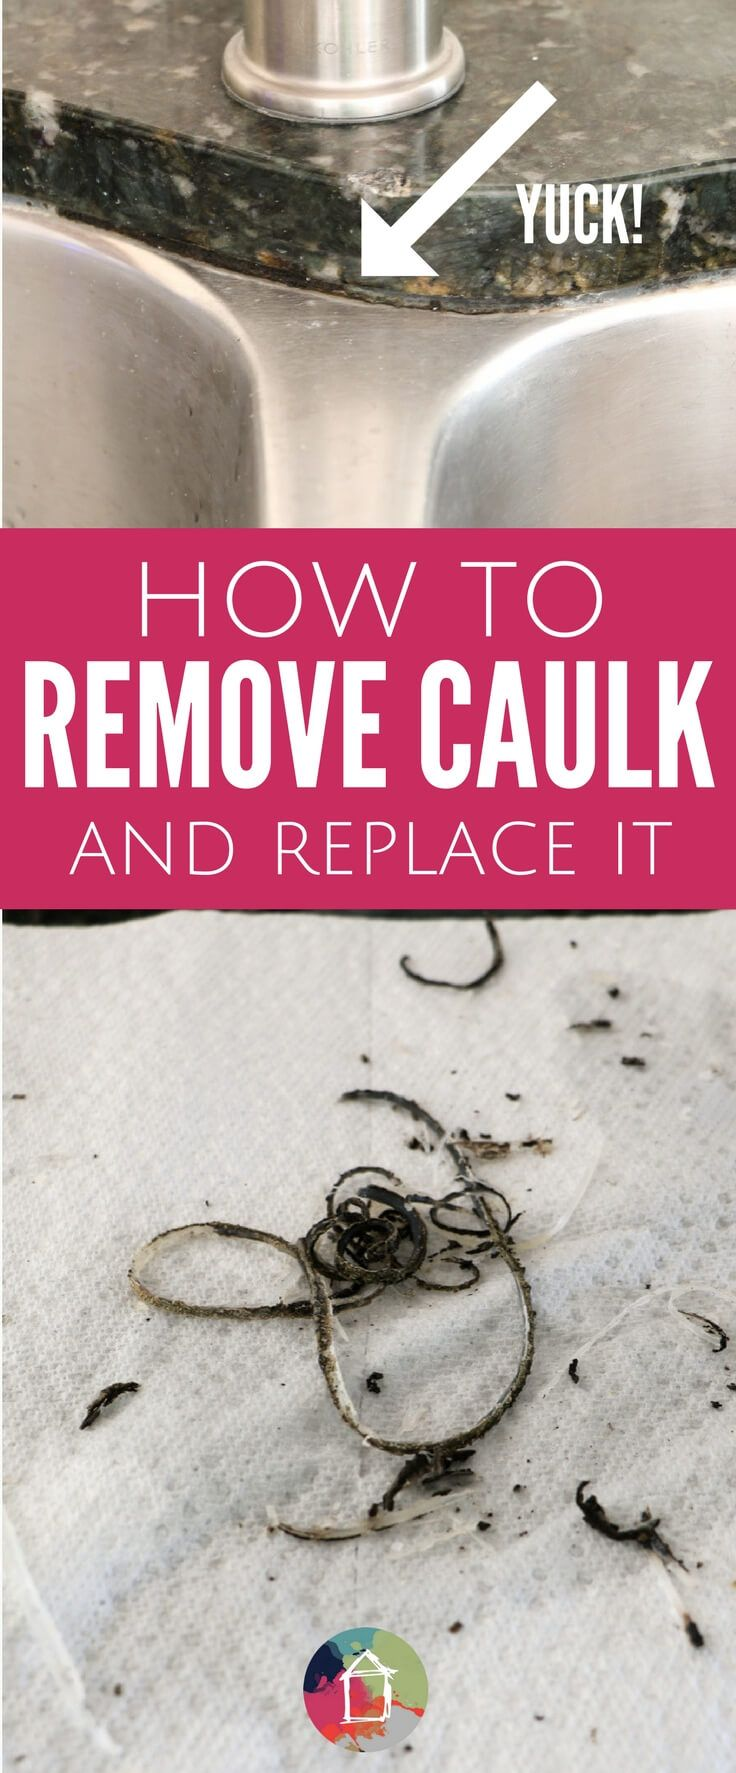 Ever wondered how to remove caulk and replace it? It's EASY! Learn how to replace any nasty caulk in your kitchen or bathroom with this step-by-step caulking tutorial.